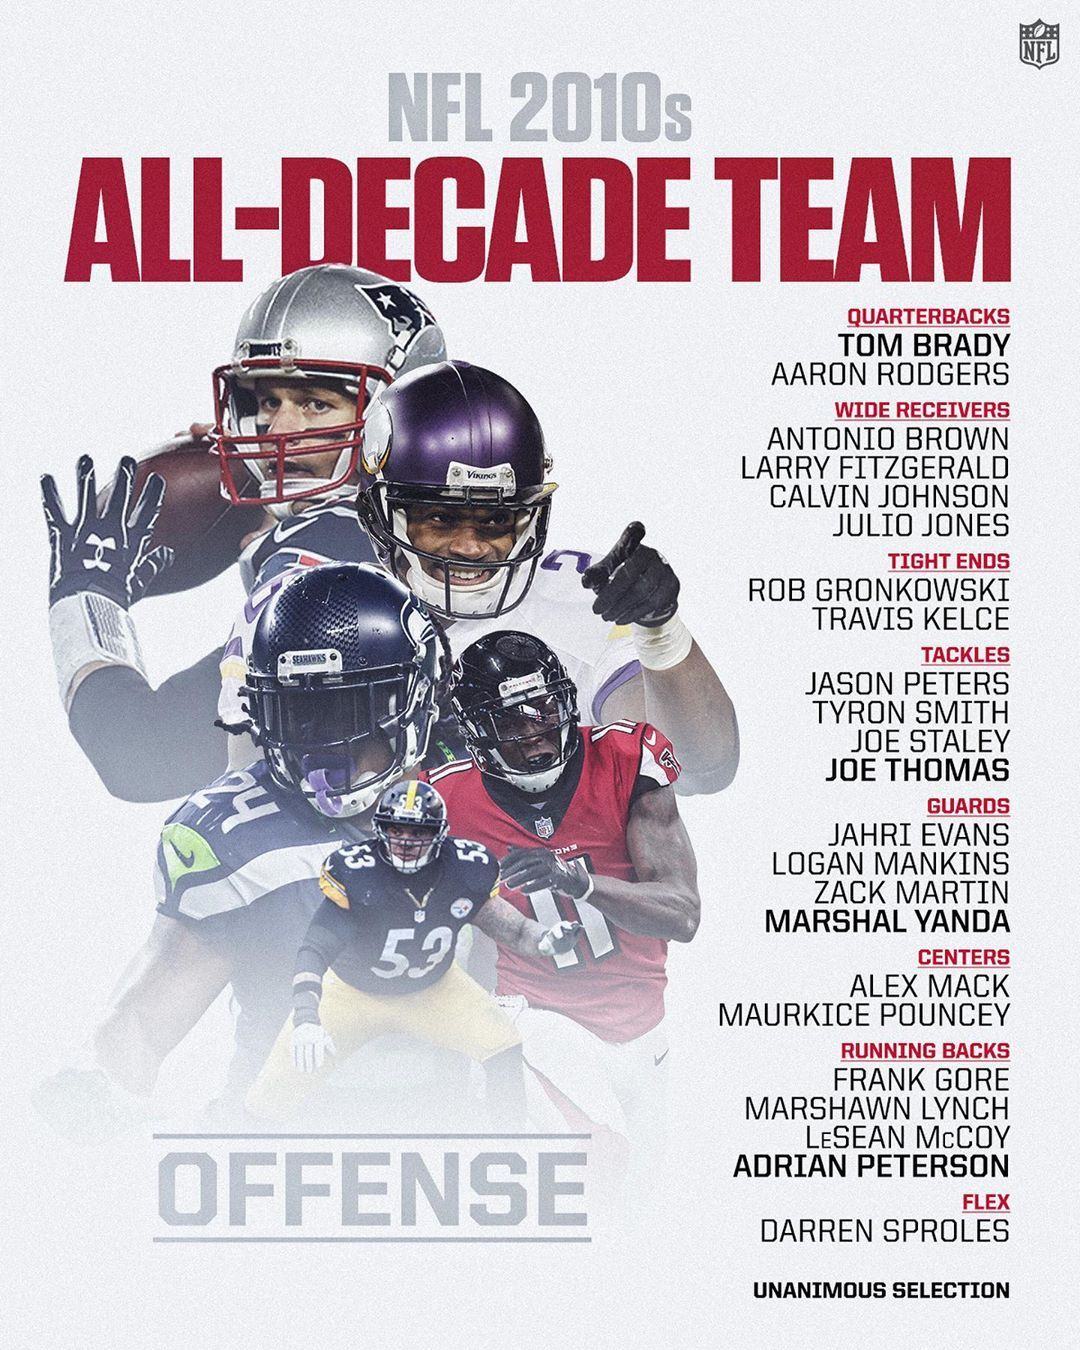 272 9k Likes 9 773 Comments Nfl Nfl On Instagram The Nfl S 2010s All Decade Team Offense In 2020 Nfl Rob Gronkowski Chandler Jones